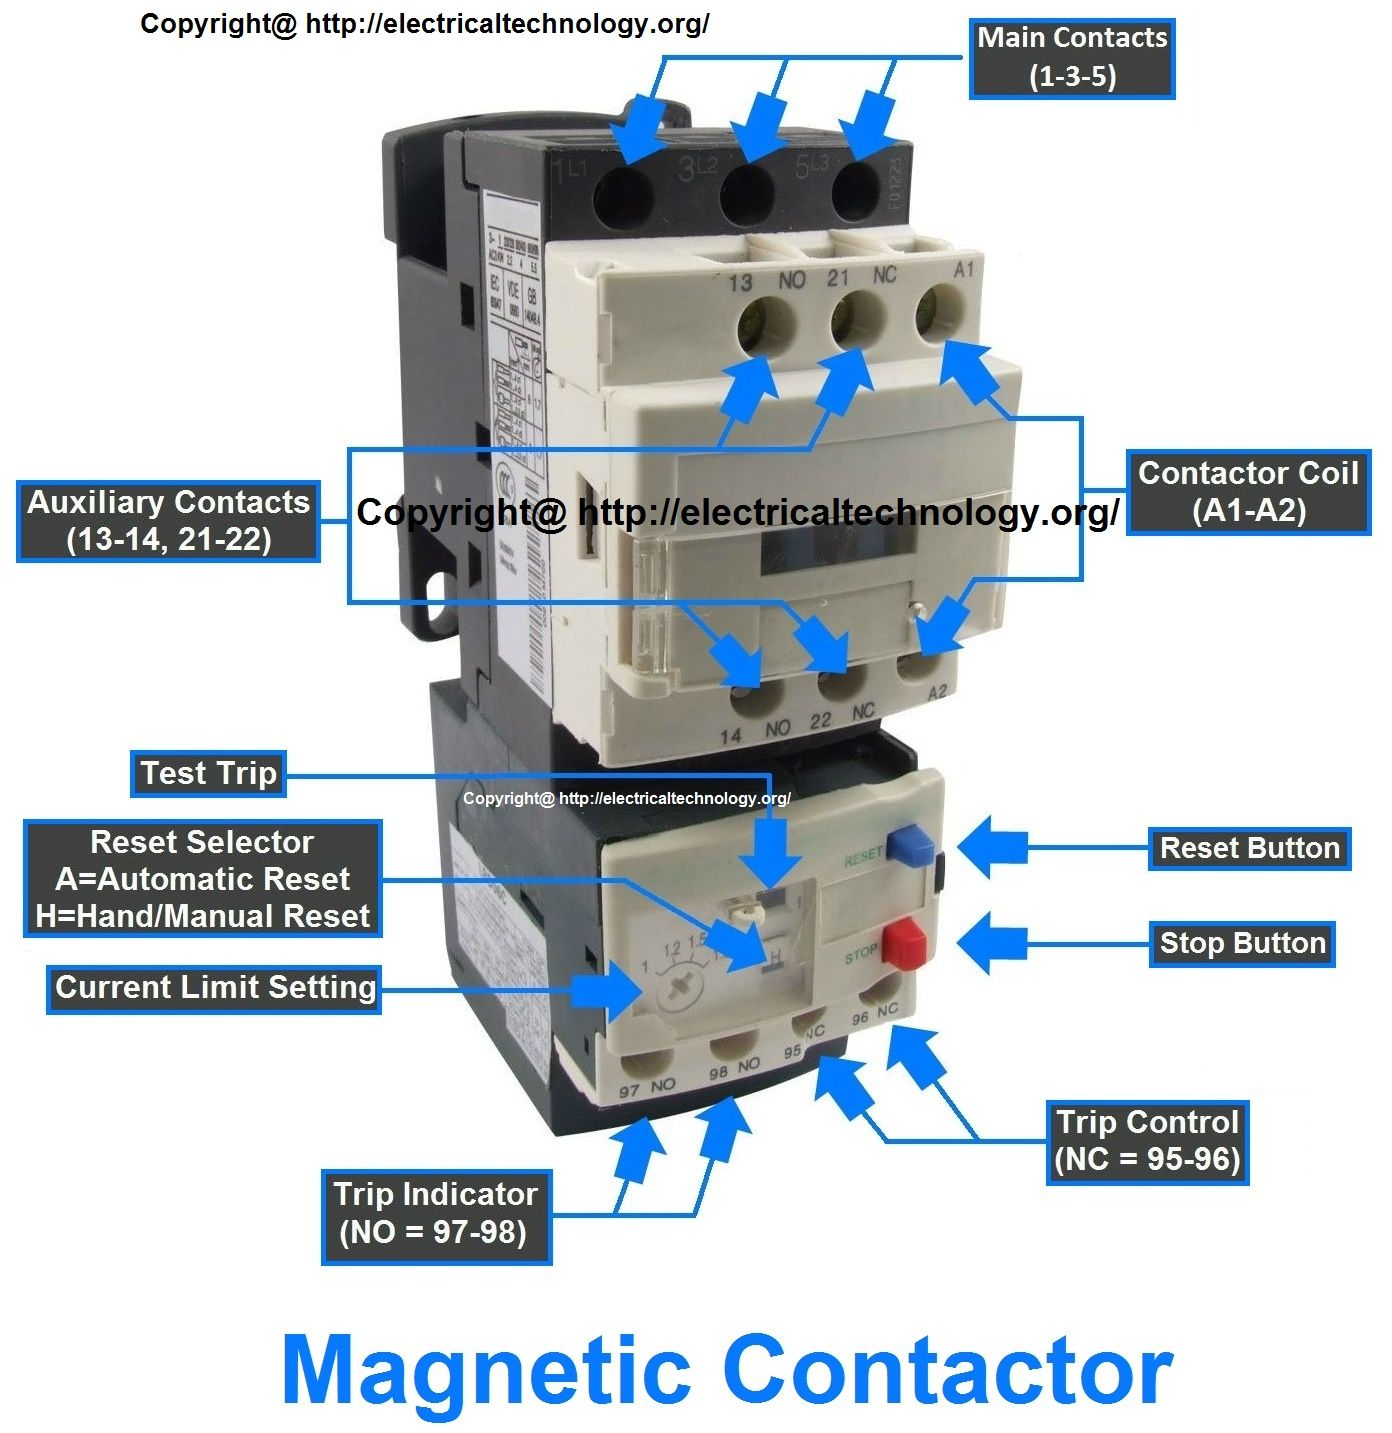 f465dee1d283abe0d5eeb4d3a000fdd3 rated characteristics of electrical contactors electro magnetic electrical contactor wiring diagram at bayanpartner.co